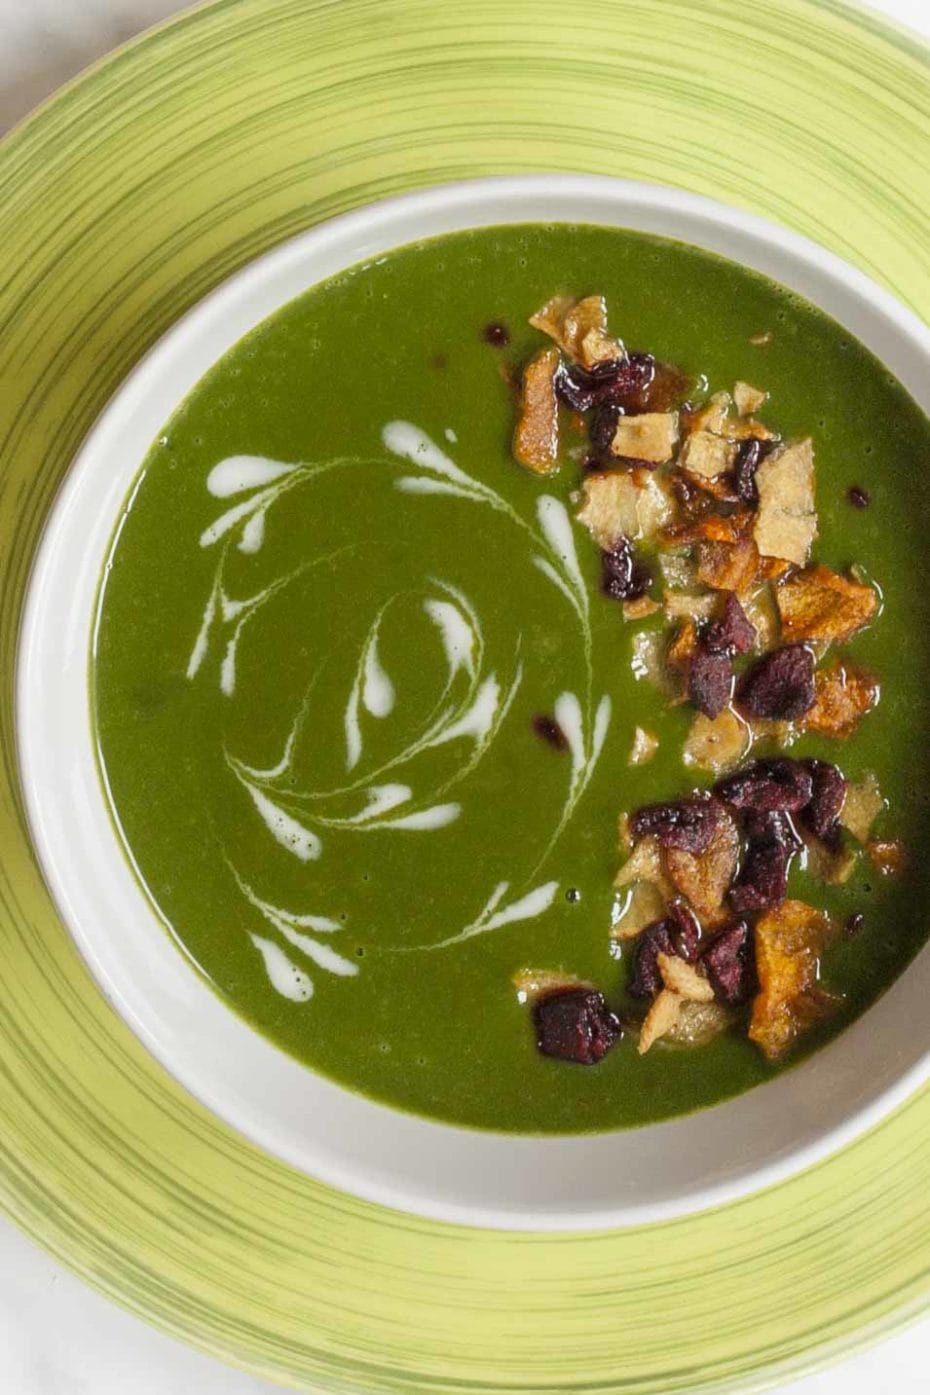 a bowl of green soup sprinkled with vegetable crisps and white swirls.